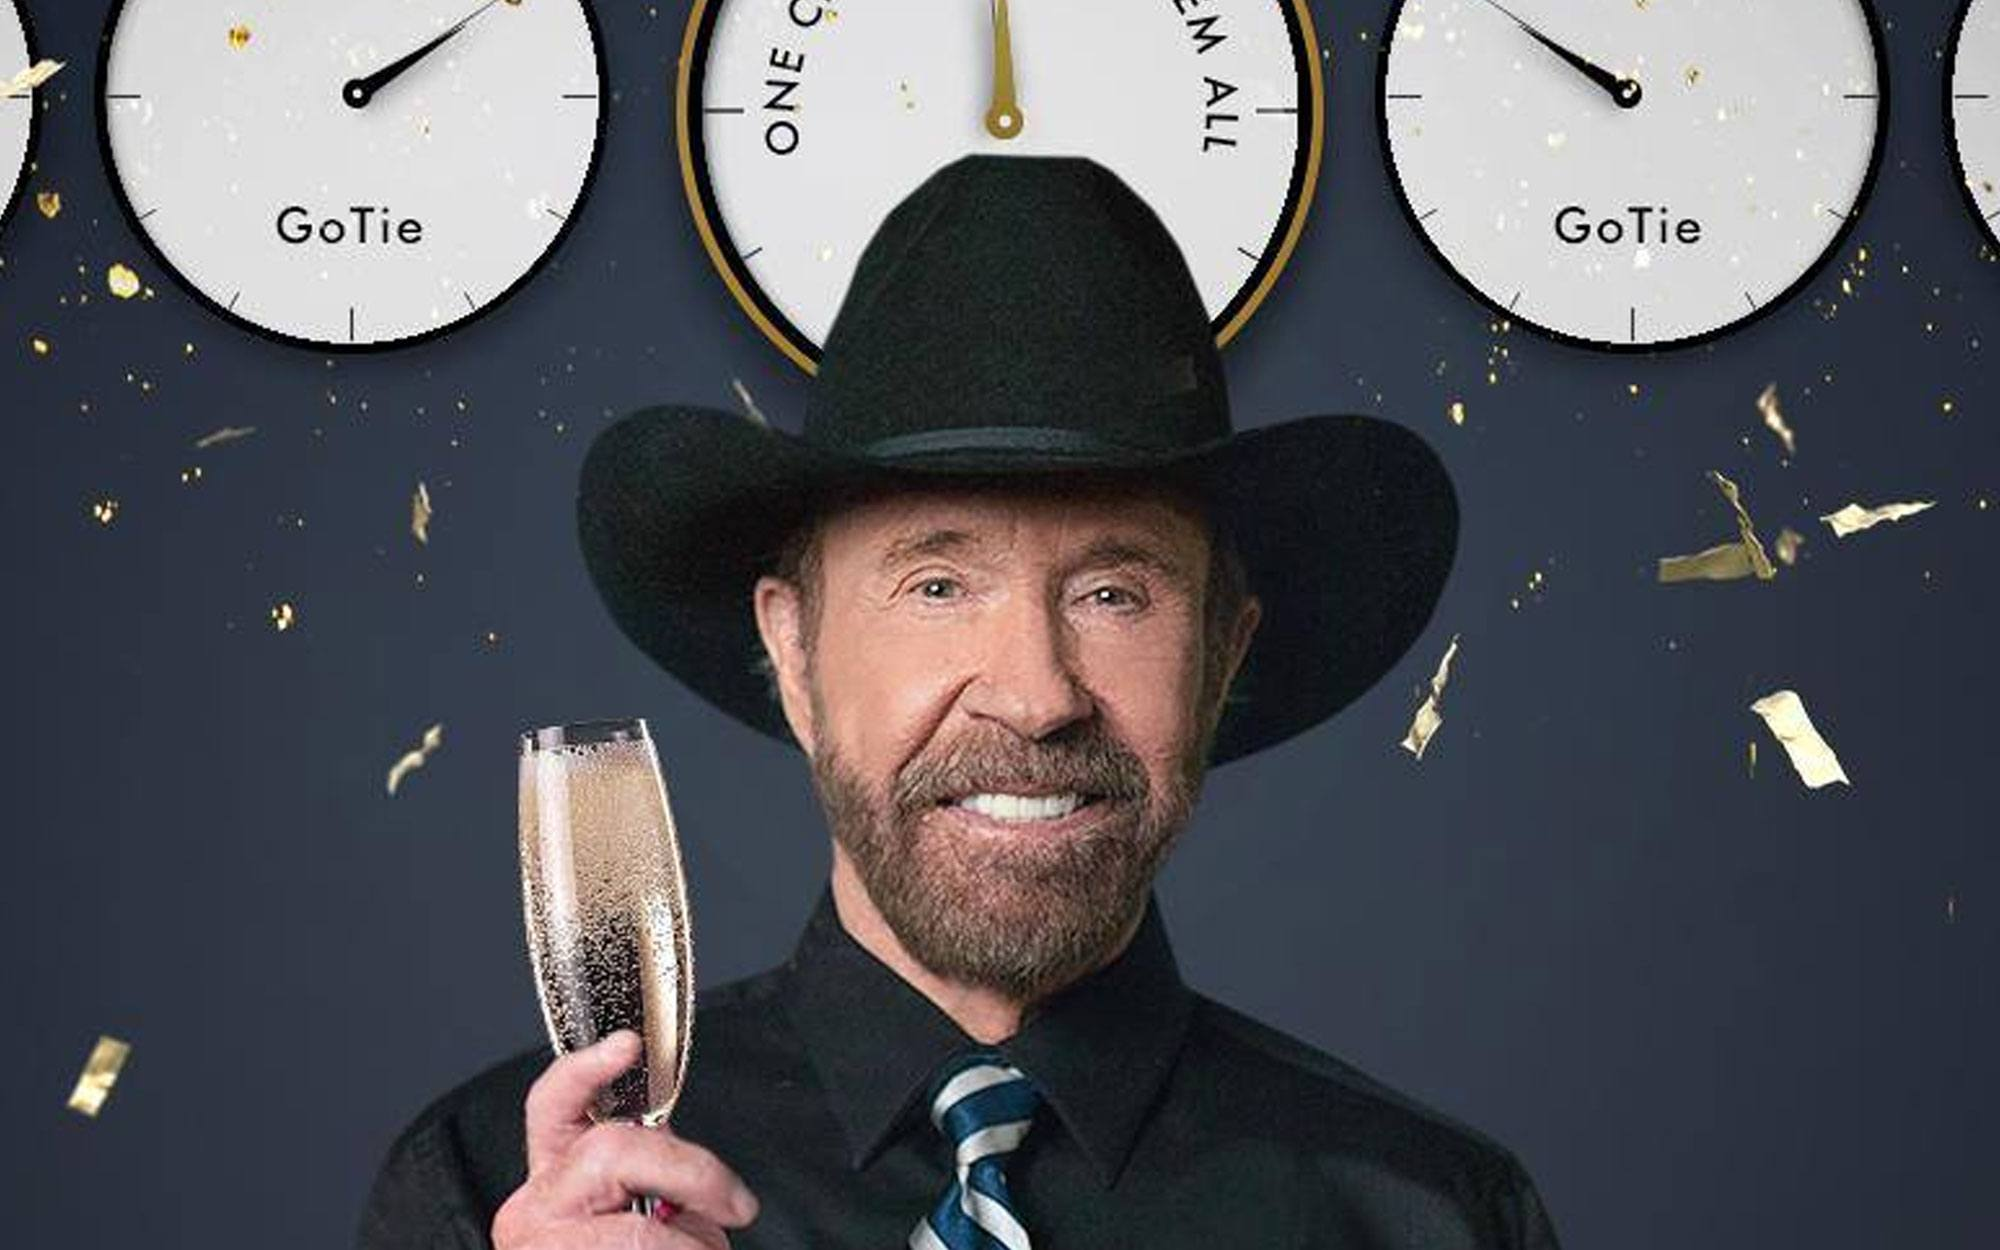 Chuck Norris Wants Chuck Norris Lookalikes for Upcoming 5K